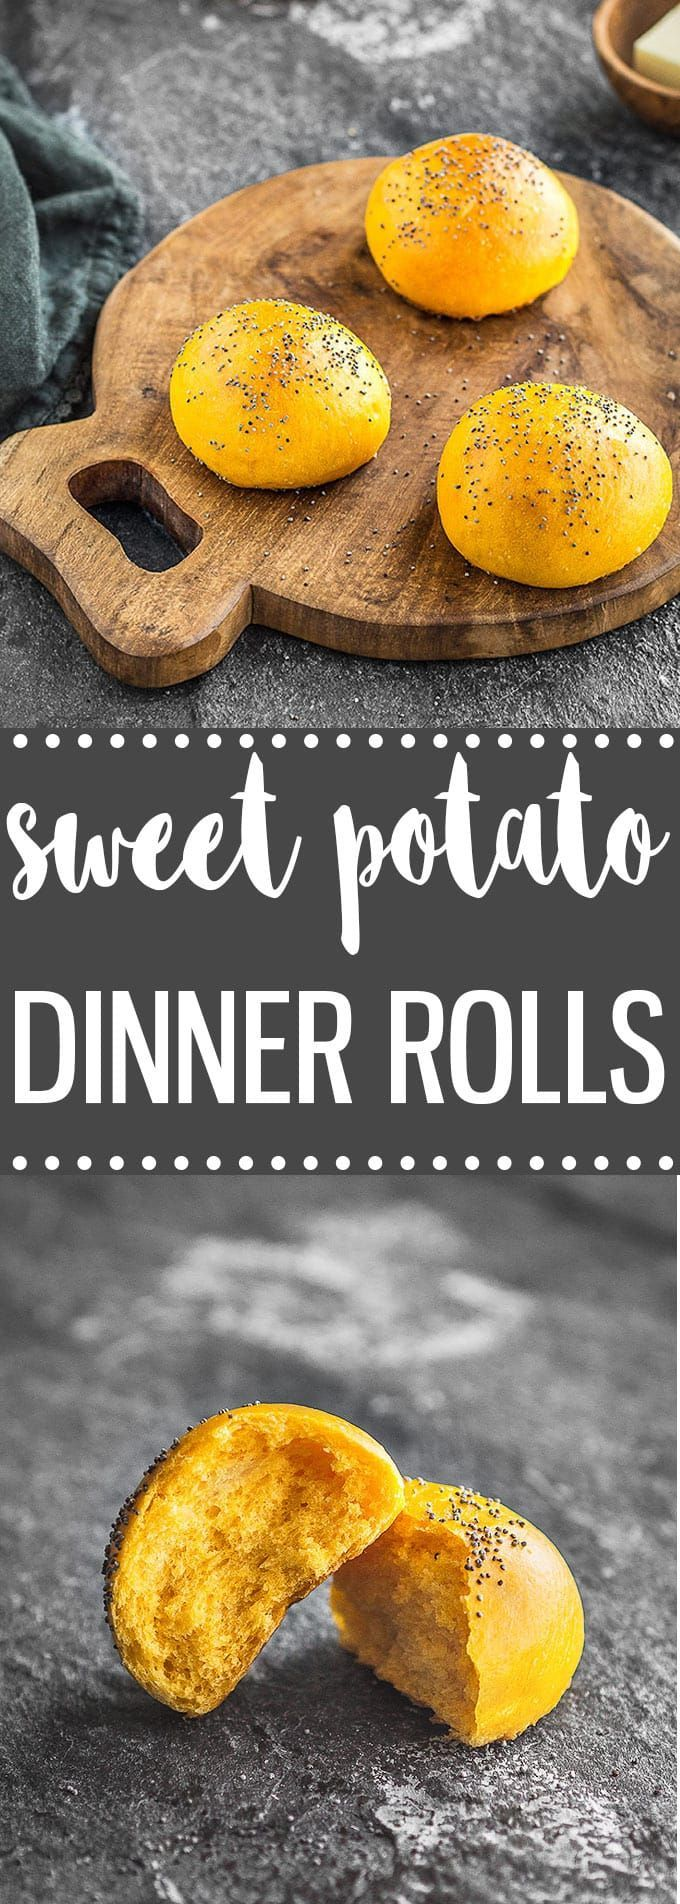 Soft and fluffy homemade sweet potato dinner rolls. This is the perfect easy recipe for your Thanksgiving table! via /easyasapplepie/